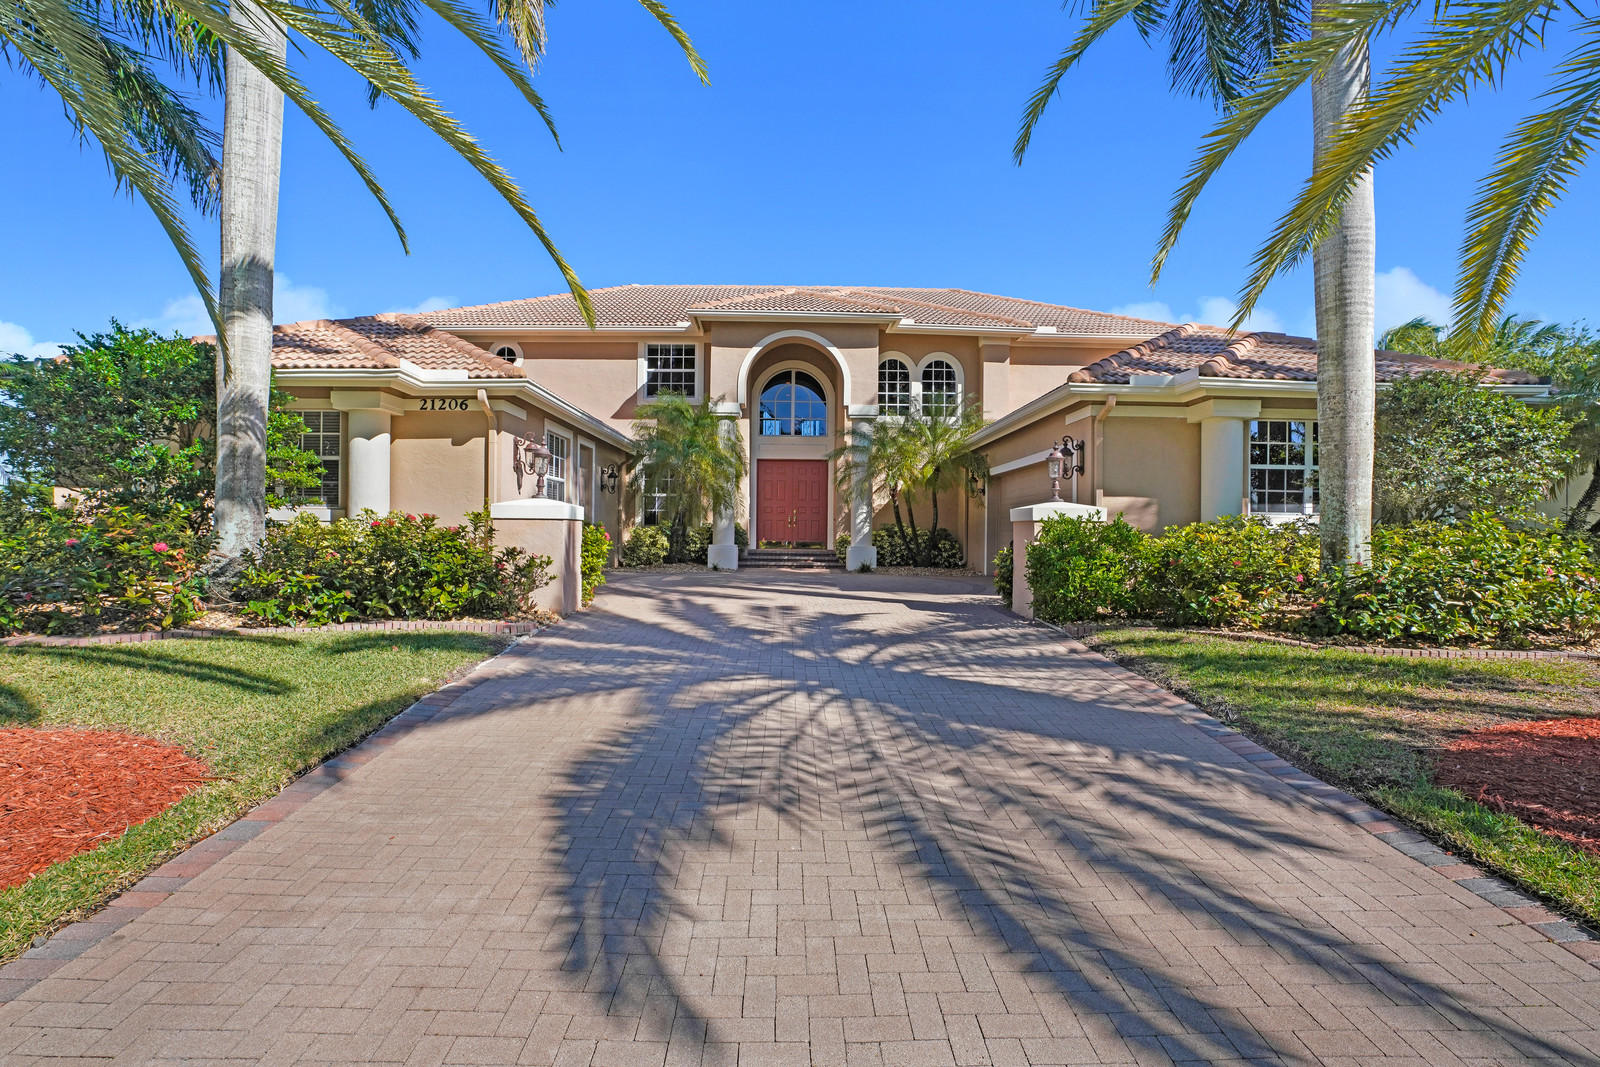 """Largest, most sought after model in Boca Falls. There are 5 bedrooms + den (6th) + game room + media room + workout room + storage room. Could easily be 7 bedrooms if needed by adding a closet to media room. Situated on private, fenced .35 acre,  lake lot in the Estates section. Oversized, pavered patio w/summer kitchen surrounds the sparkling pool. Outdoor shower.Open, eat-in kitchen w/wood cabinets, granite counters, stainless steel appliances, center island, planning desk + a walk-in pantry/wine closet under the staircase. Stone look tile on diagonal. 1st floor Master Suite has crown molding, customized closets, sitting area overlooking pool & luxurious bathroom w/2 vanities, soaking tub + separate shower w/seat. Full hurricane protection. 3 zone AC. 2 water heaters. ''A'' rated schools ANSWERS TO FREQUENTLY ASKED QUESTIONS:  * Roof - 1998 * 2 brand new water heaters - Fall of 2018 * THREE zone Air Conditioning - 2006 (2) 2010 (1) * Hurricane Protection - Impact windows upstairs (2013). Panel shutters downstairs. Hurricane rated garage door. Hook-up for generator in garage.  * Inside laundry room w/cabinets, sink & pulldown ironing board * NO POPCORN - knockdown finish on ceilings * TWO powder rooms - one serving as cabana bath out to pool * Upstairs game room has wet bar, refrigerator, window seat w/beautiful lake views + a pool table (included at no extra cost). * Theater seats in media room are negotiable. * HOA fee covers 24 hour manned gates, clubhouse/community room, community pool, lighted tennis courts, playground, fitness center & cable.  * """"A"""" rated schools: Waters Edge Elementary, Loggers Run Middle and West Boca High School * Convenient neighborhood shopping includes Publix, Walgreens, dry cleaners, hair & nail salons, numerous restaurants, Sherwin Williams paint store +++++++ * South County Regional Park is just moments away for enjoying the water park, ballfields, concerts at the Amphitheater and more."""